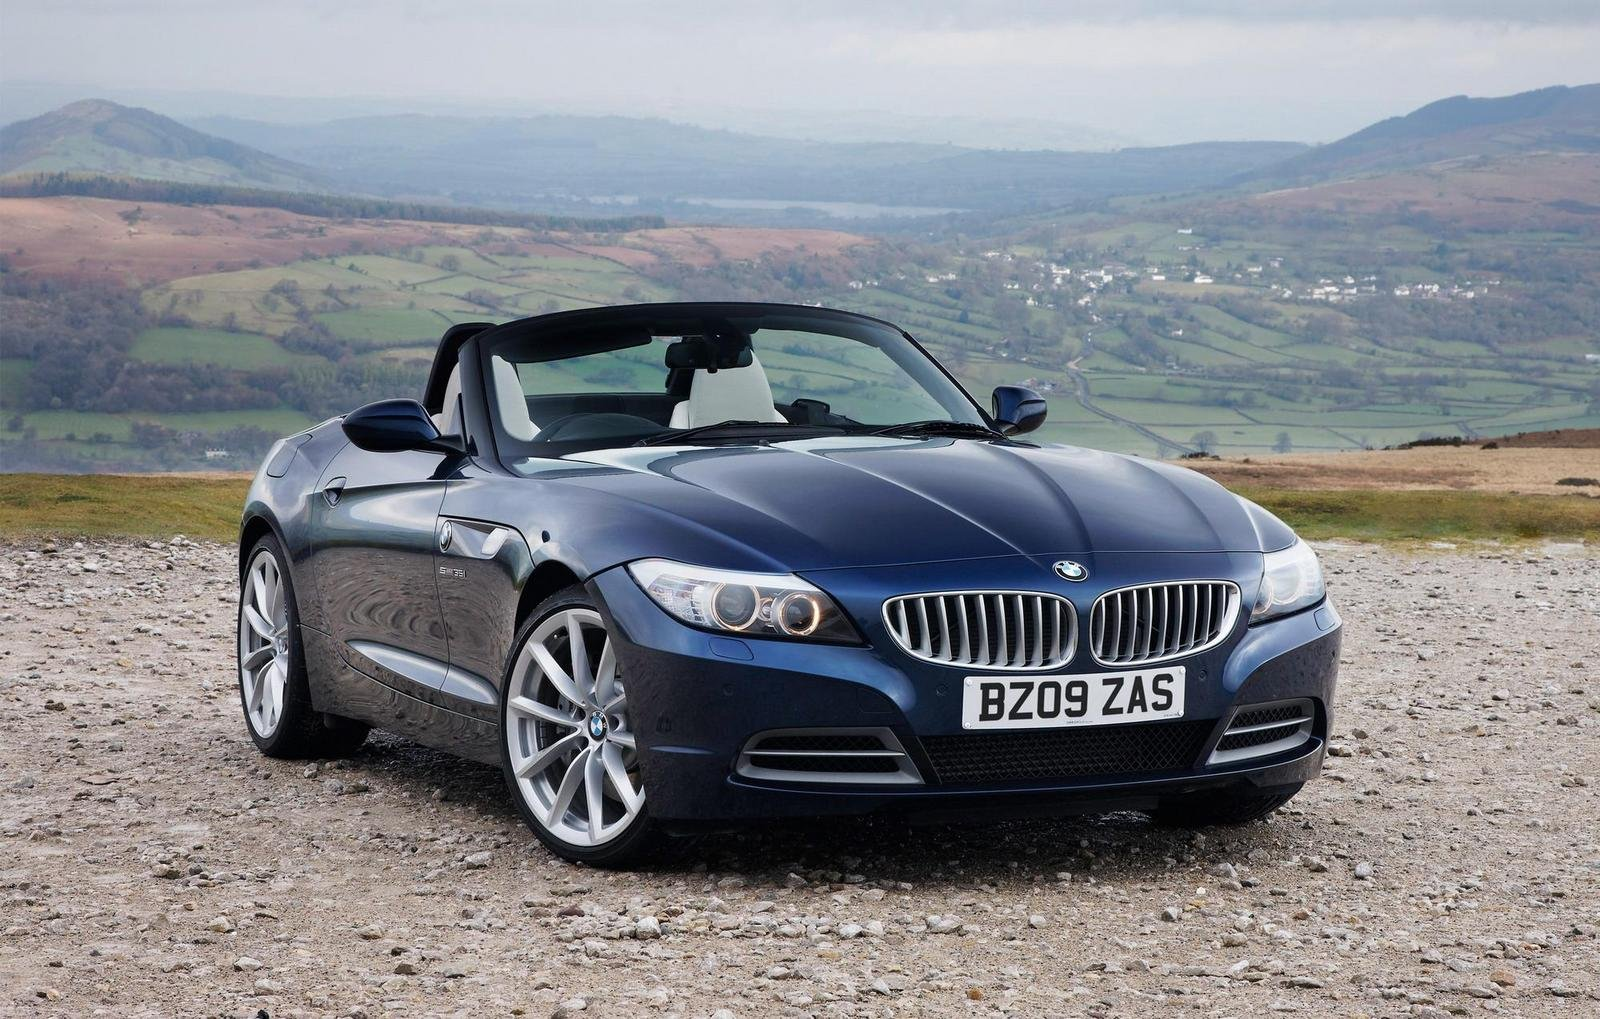 2009 bmw z4 roadster picture 299362 car review top speed. Black Bedroom Furniture Sets. Home Design Ideas